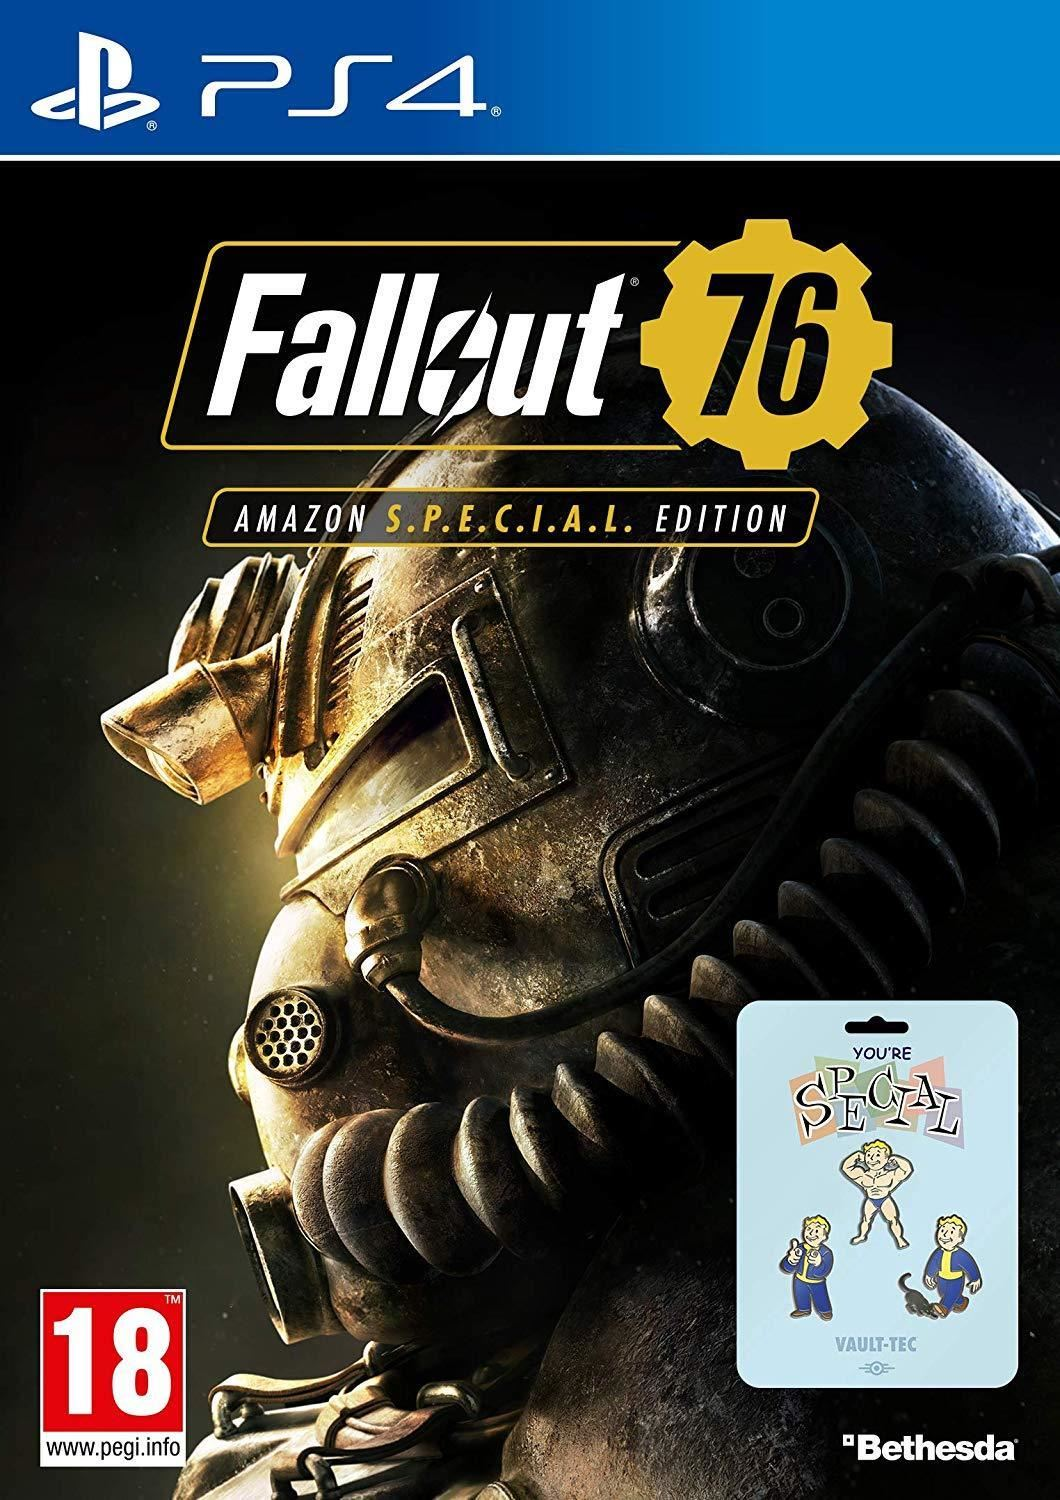 FALLOUT 76 - Special Edition with Pin Badge Set